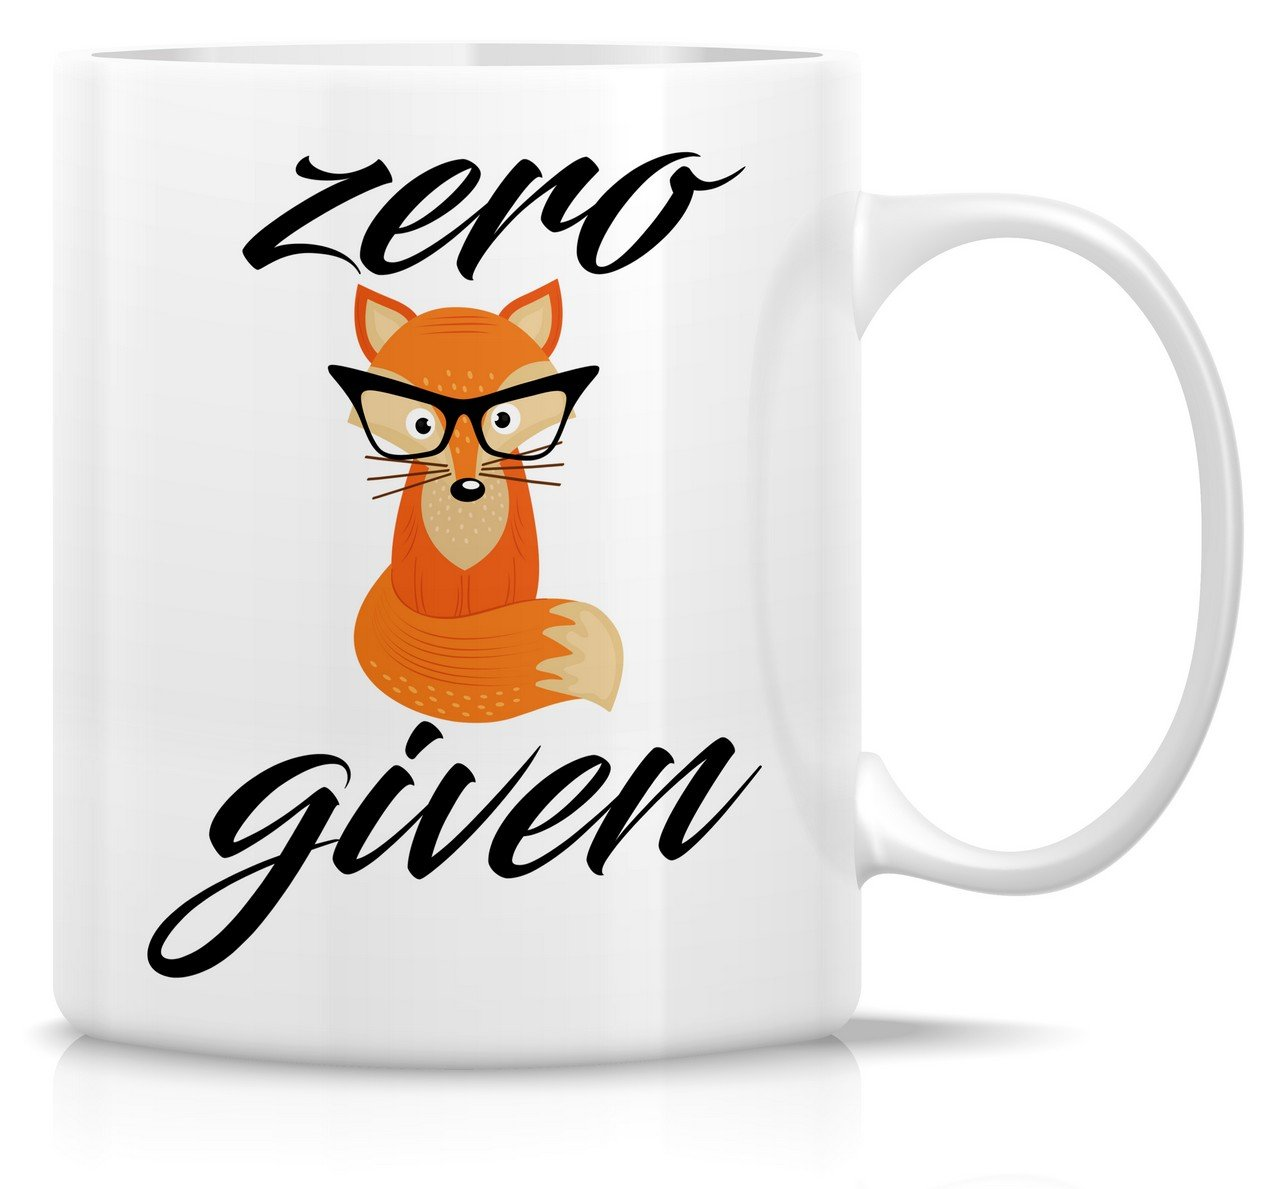 Retreez Funny Mug - Zero Fox Given 11 Oz Ceramic Coffee Mugs - Funny, Sarcasm, Sarcastic, Motivational, Inspirational birthday gifts for friends, coworkers, siblings, dad or mom. RTZ-MUG11-00023-WHT